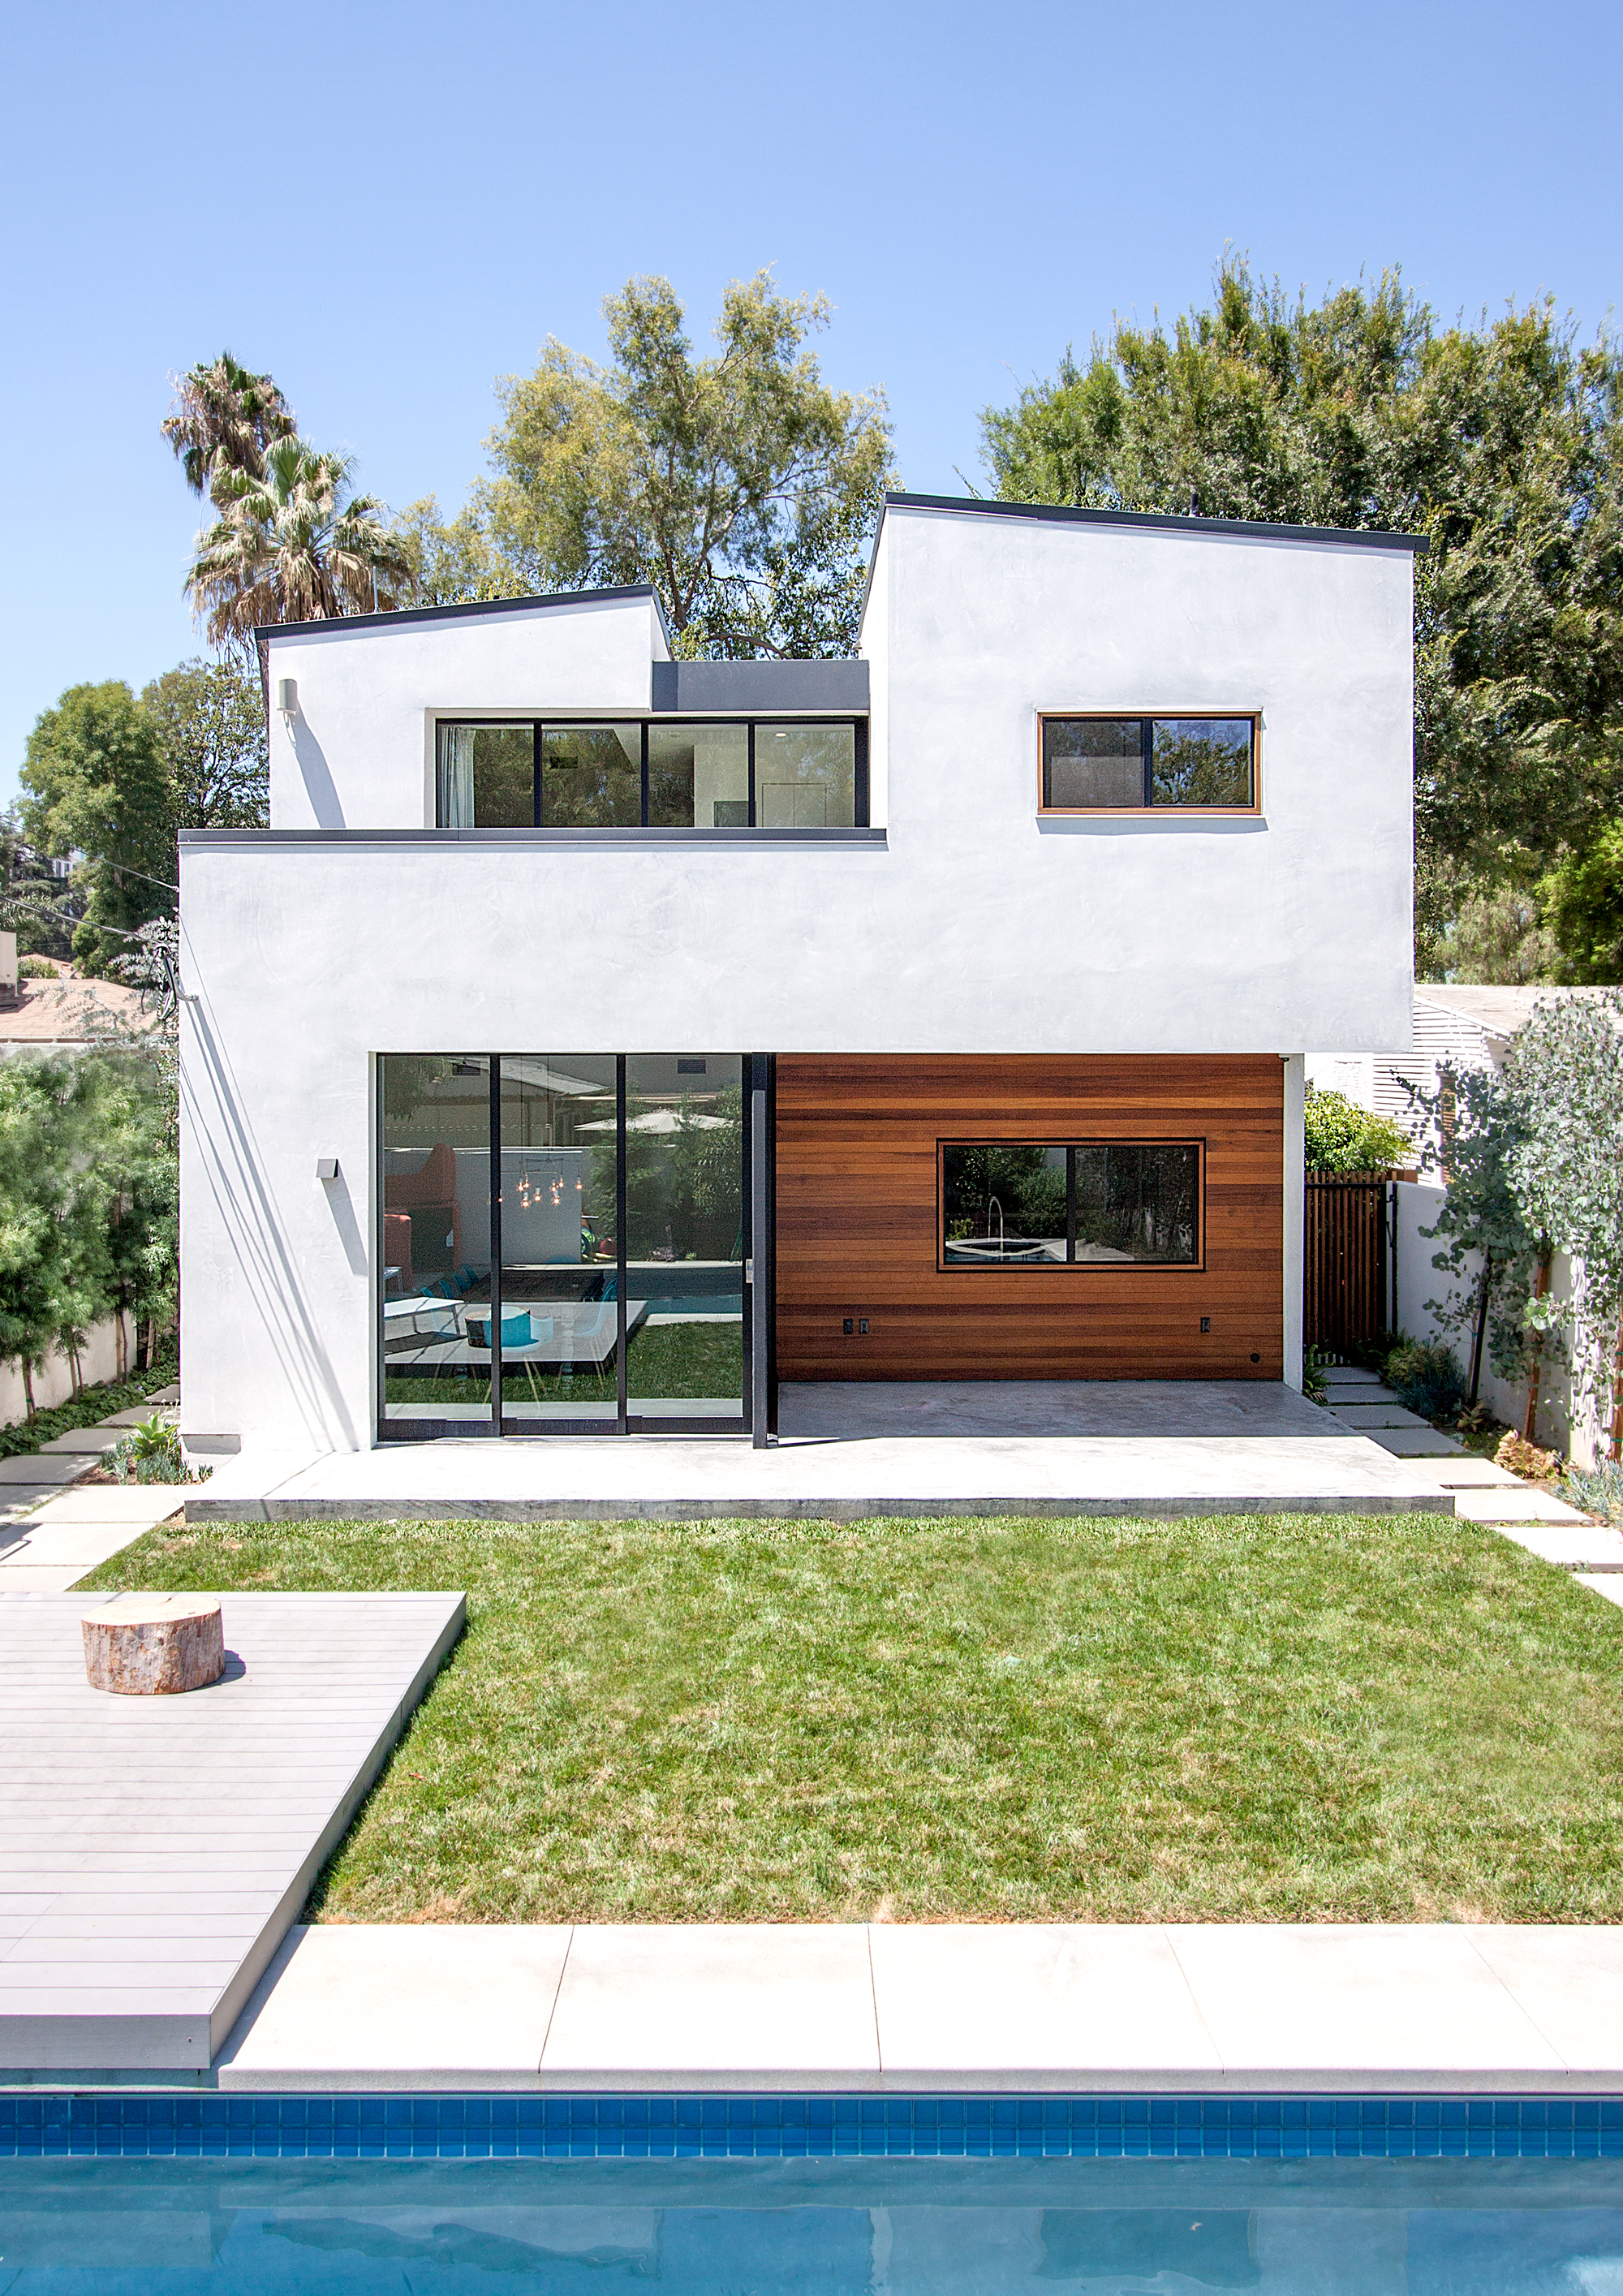 The doors at the rear of the house slide to create a seamless connection between the living spaces and the backyard. On the second floor, the doors open from the master suite to a large balcony that overlooks the pool.